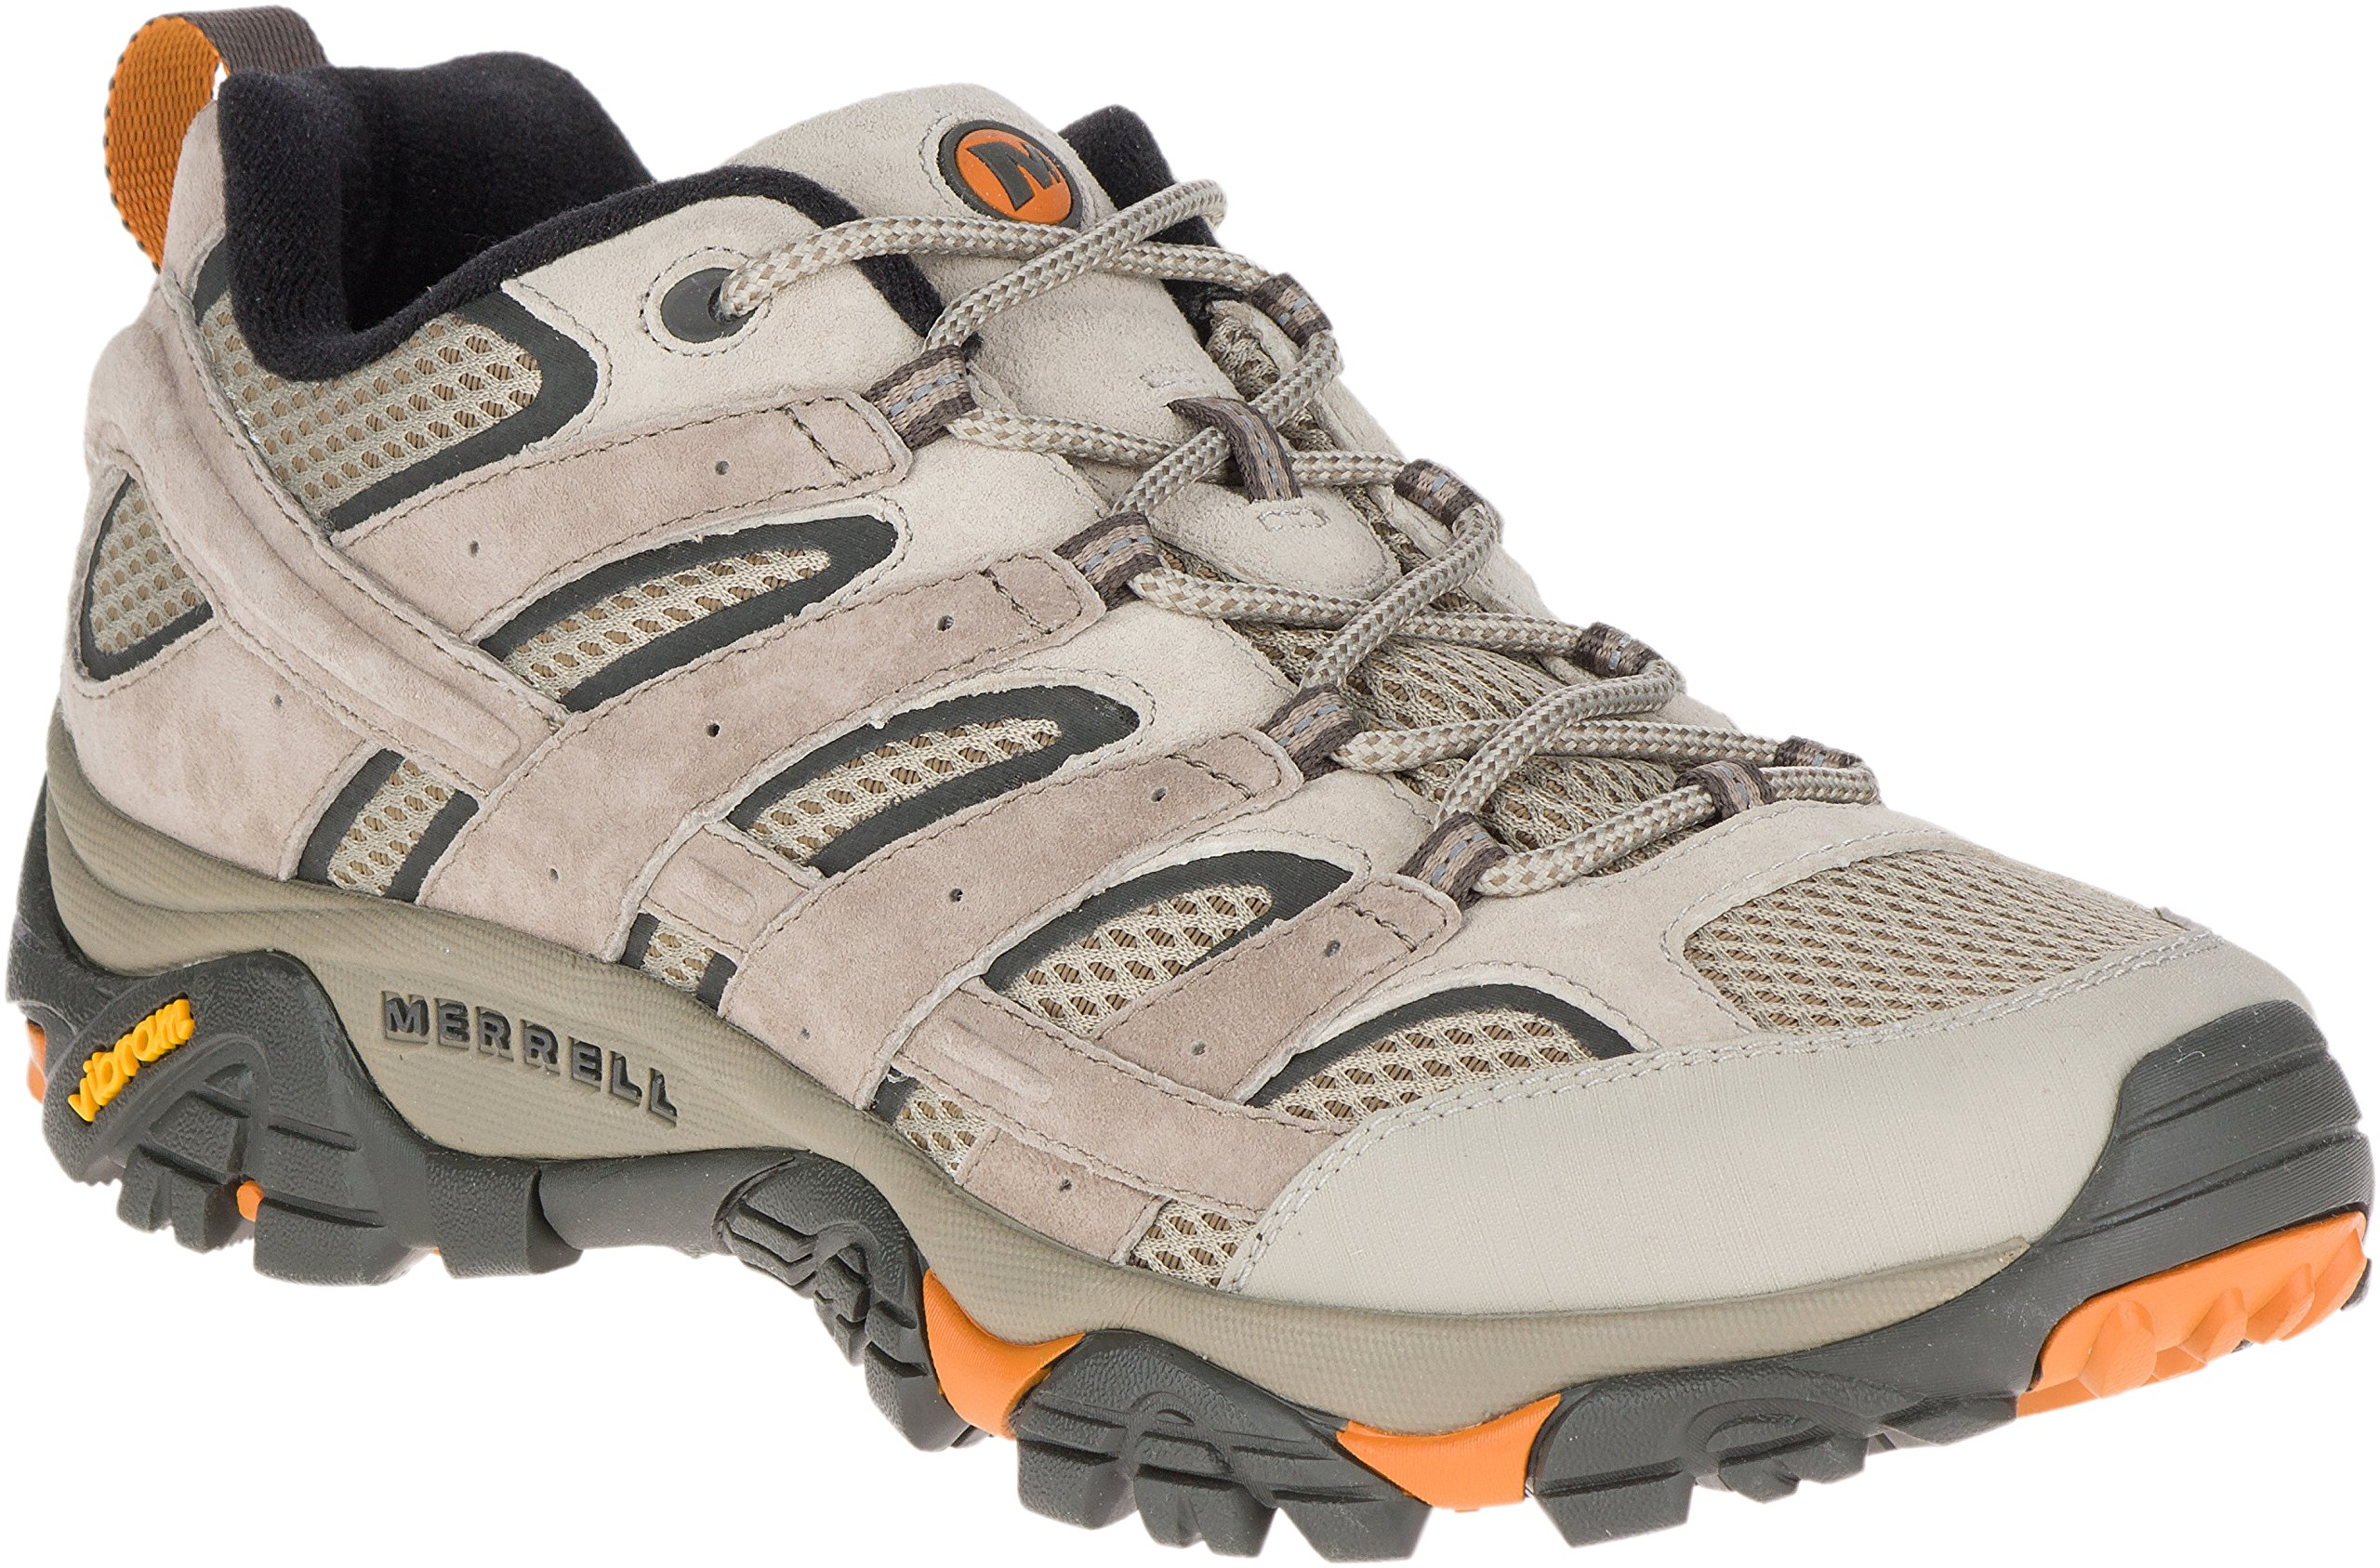 Merrell Men's Moab 2 Vent Hiking Shoe (11 D(M) US, Brindle) by Merrell